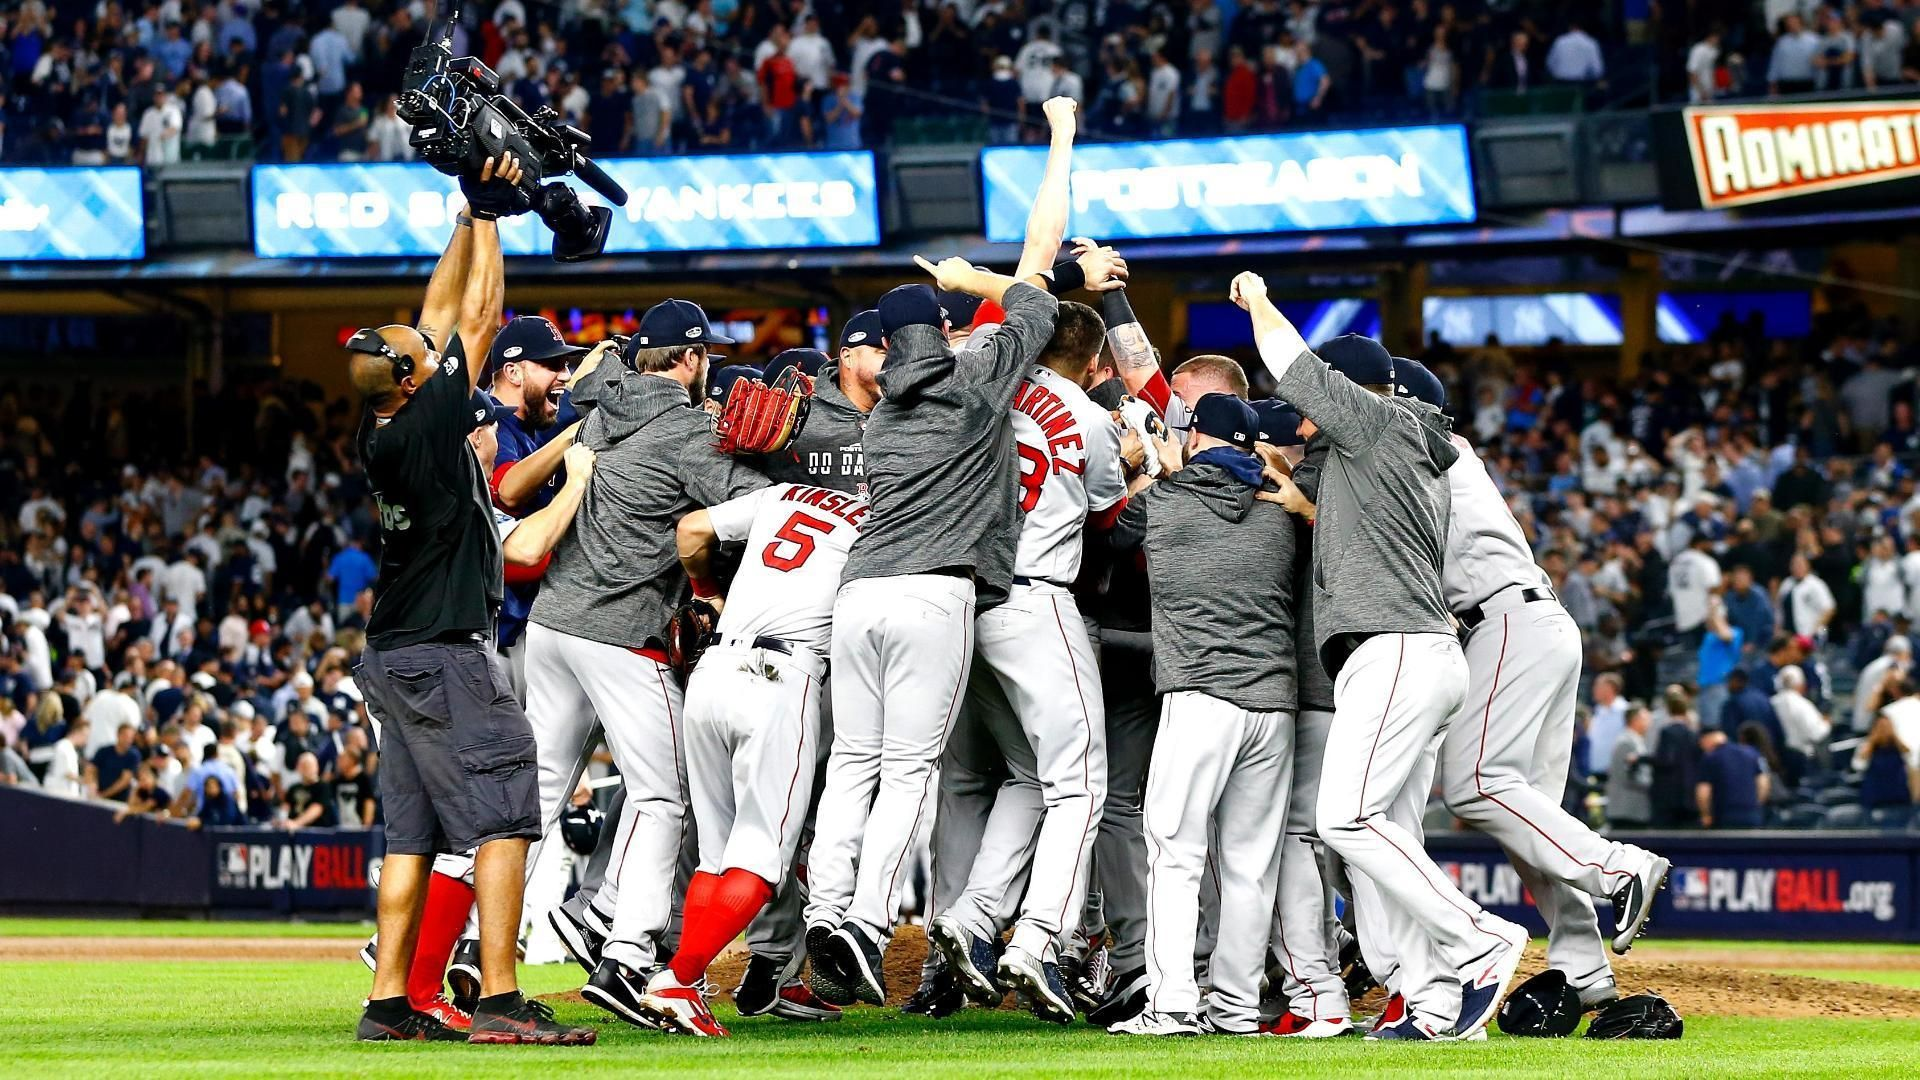 Red Sox advance past Yanks, head to the ALCS